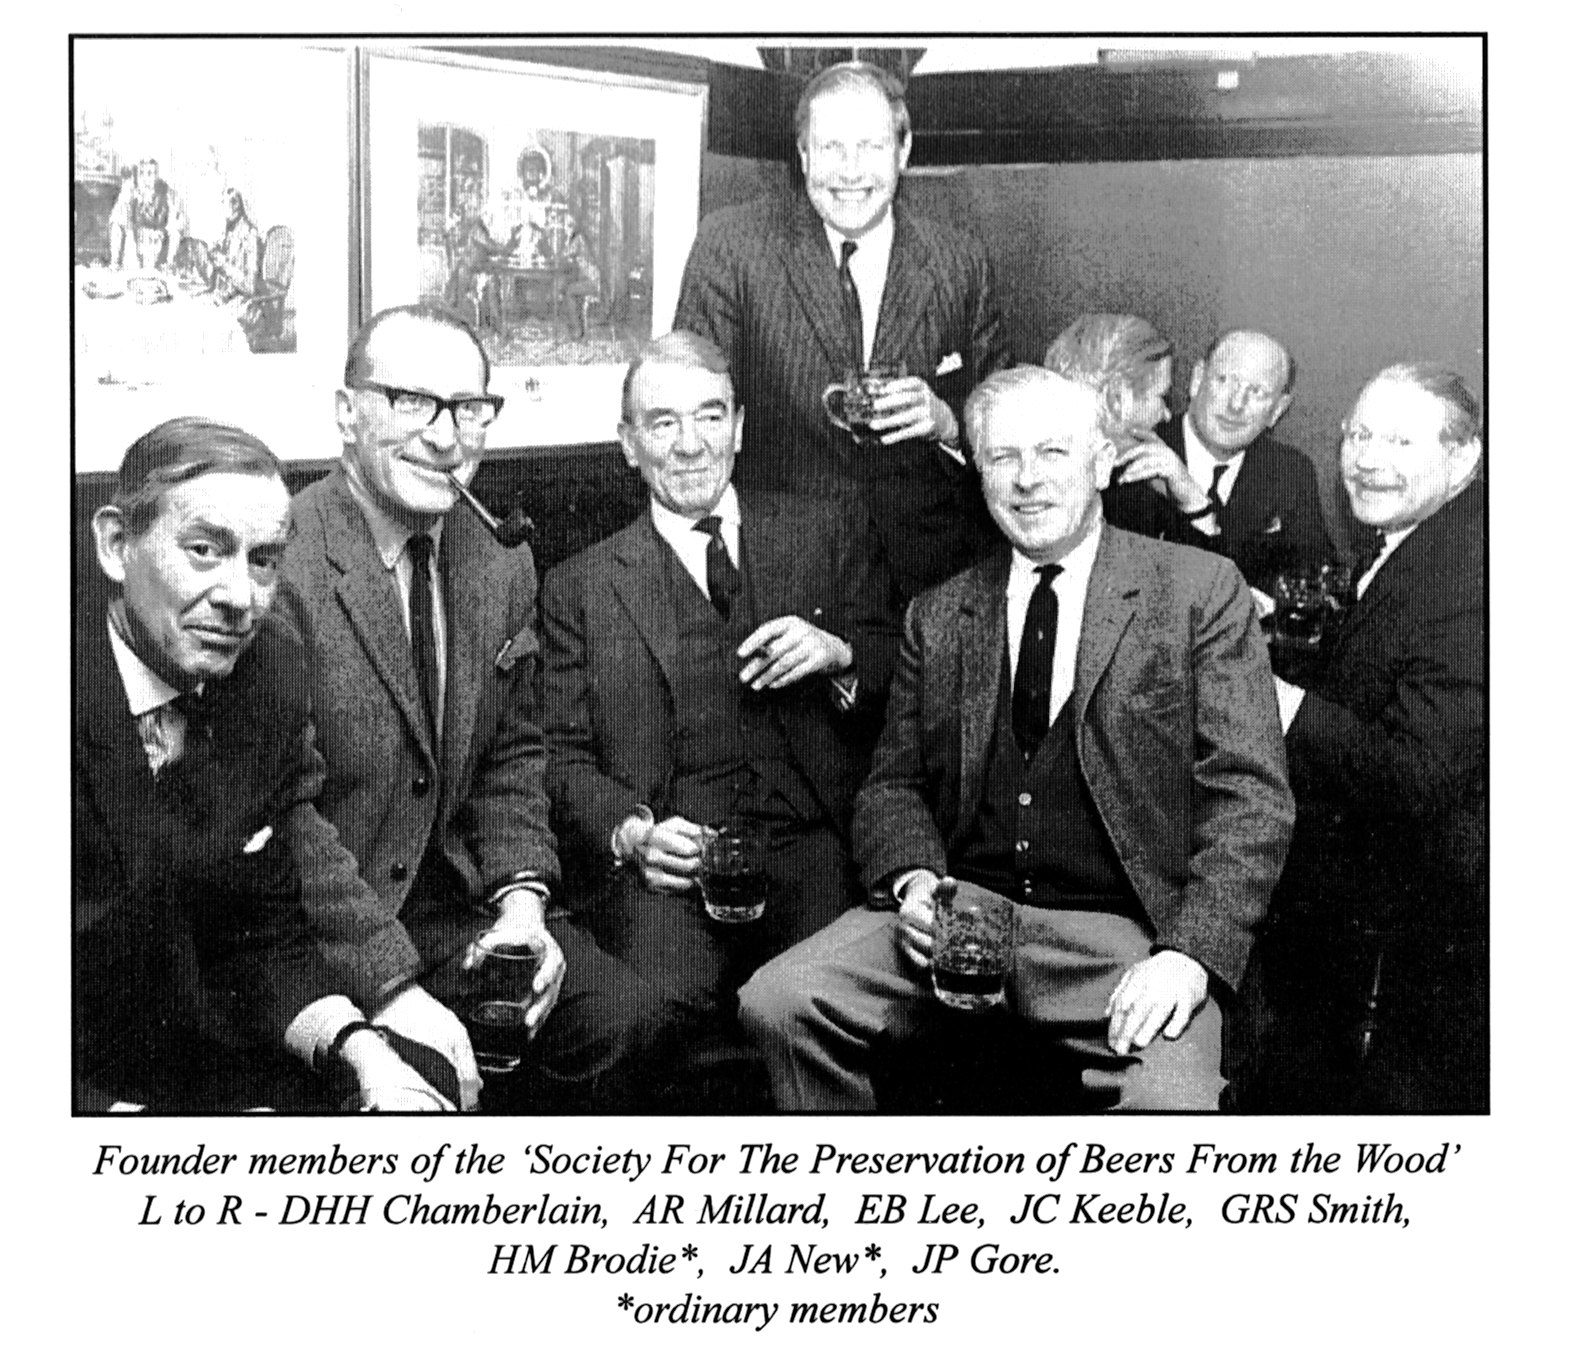 The founder members of the Society for the Preservation of Beers from the Wood. SOURCE: John Keeble; Mrs Gore.)